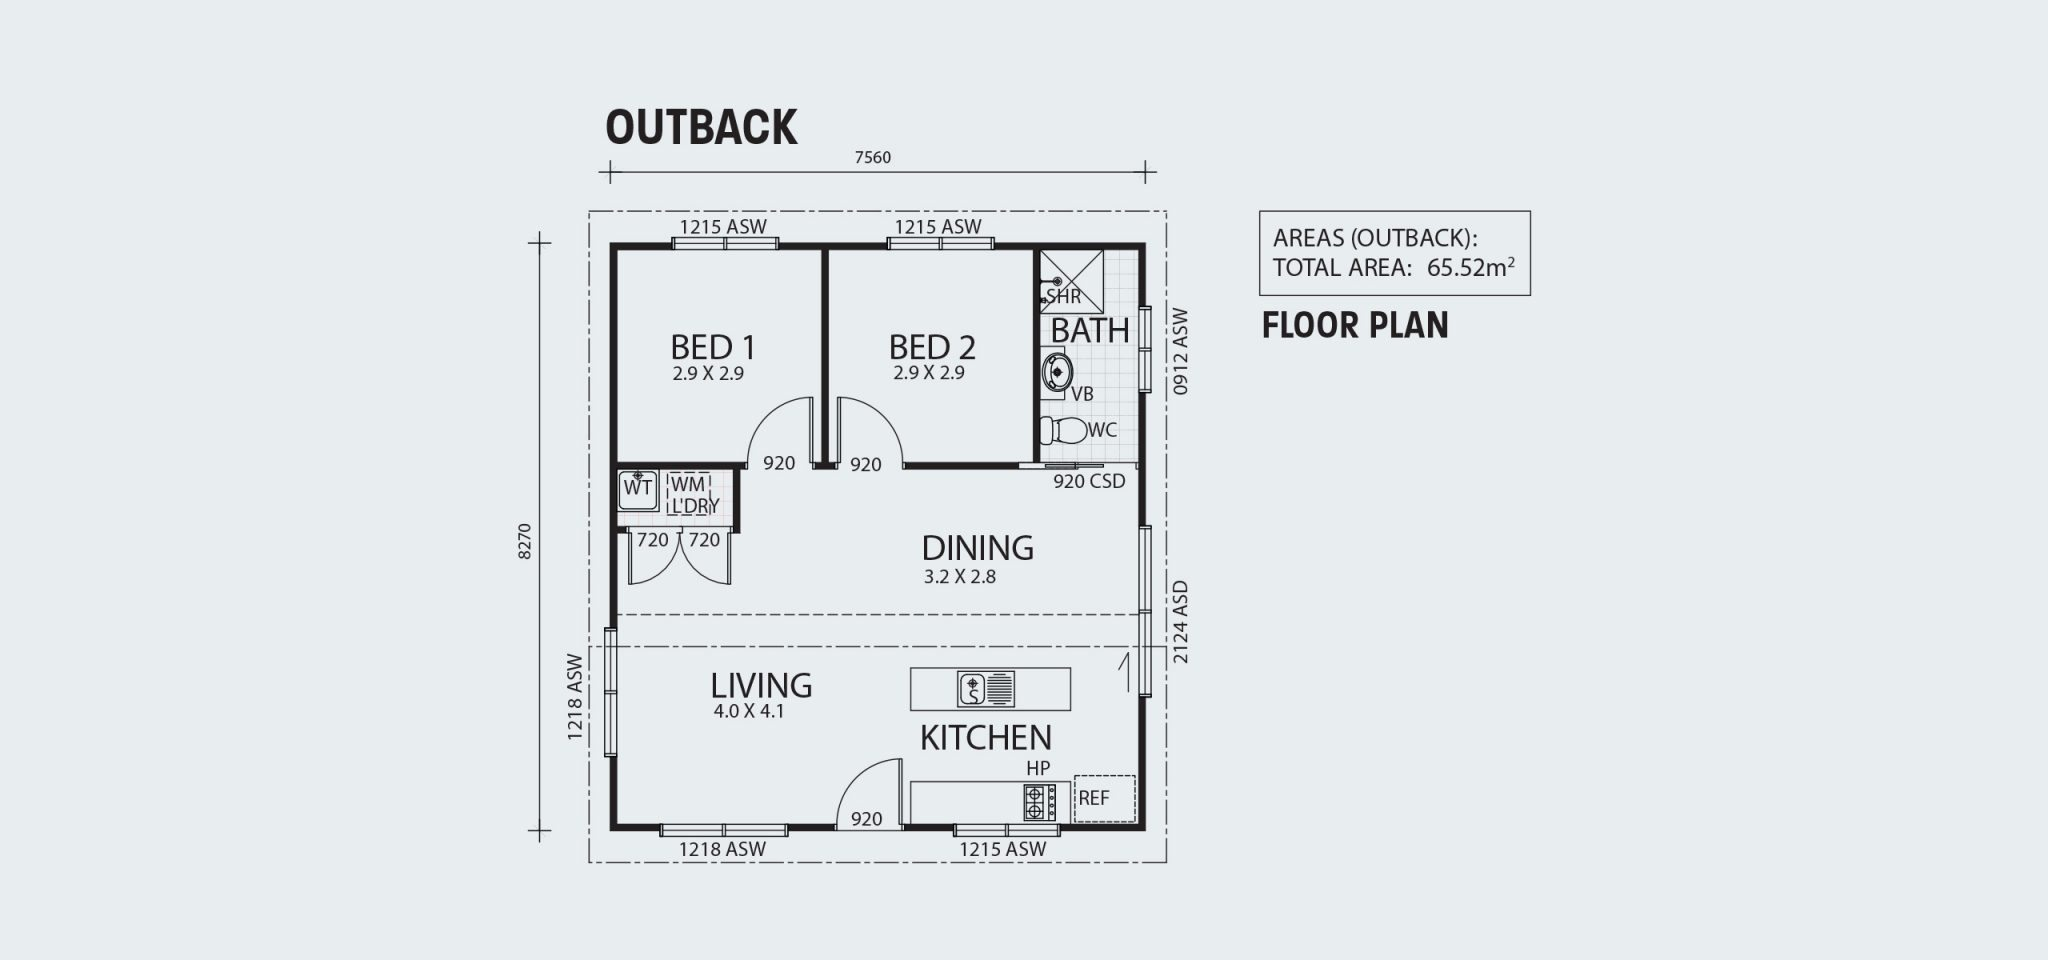 Outback R65 Floorplan